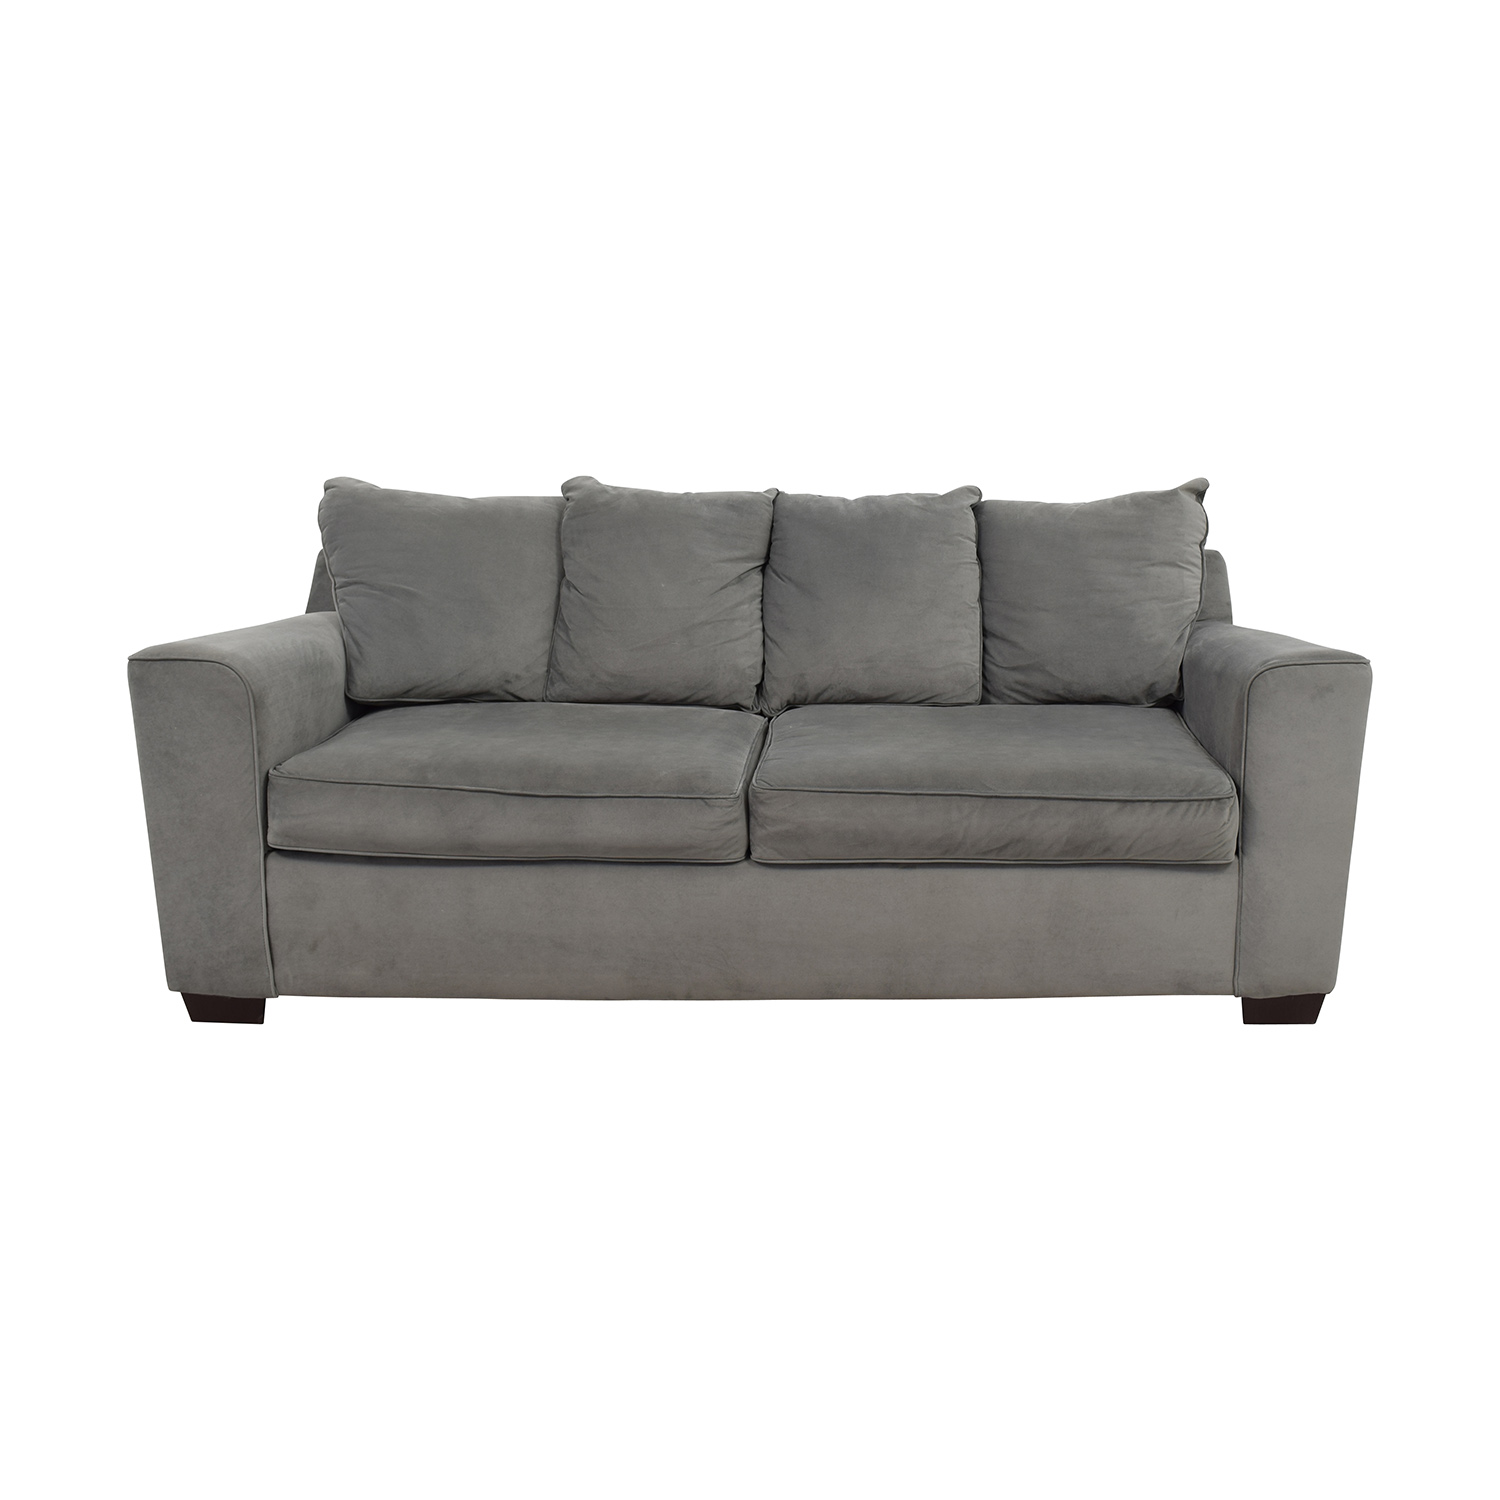 Jennifer Convertibles Jennifer Convertibles Grey Modern Couch coupon